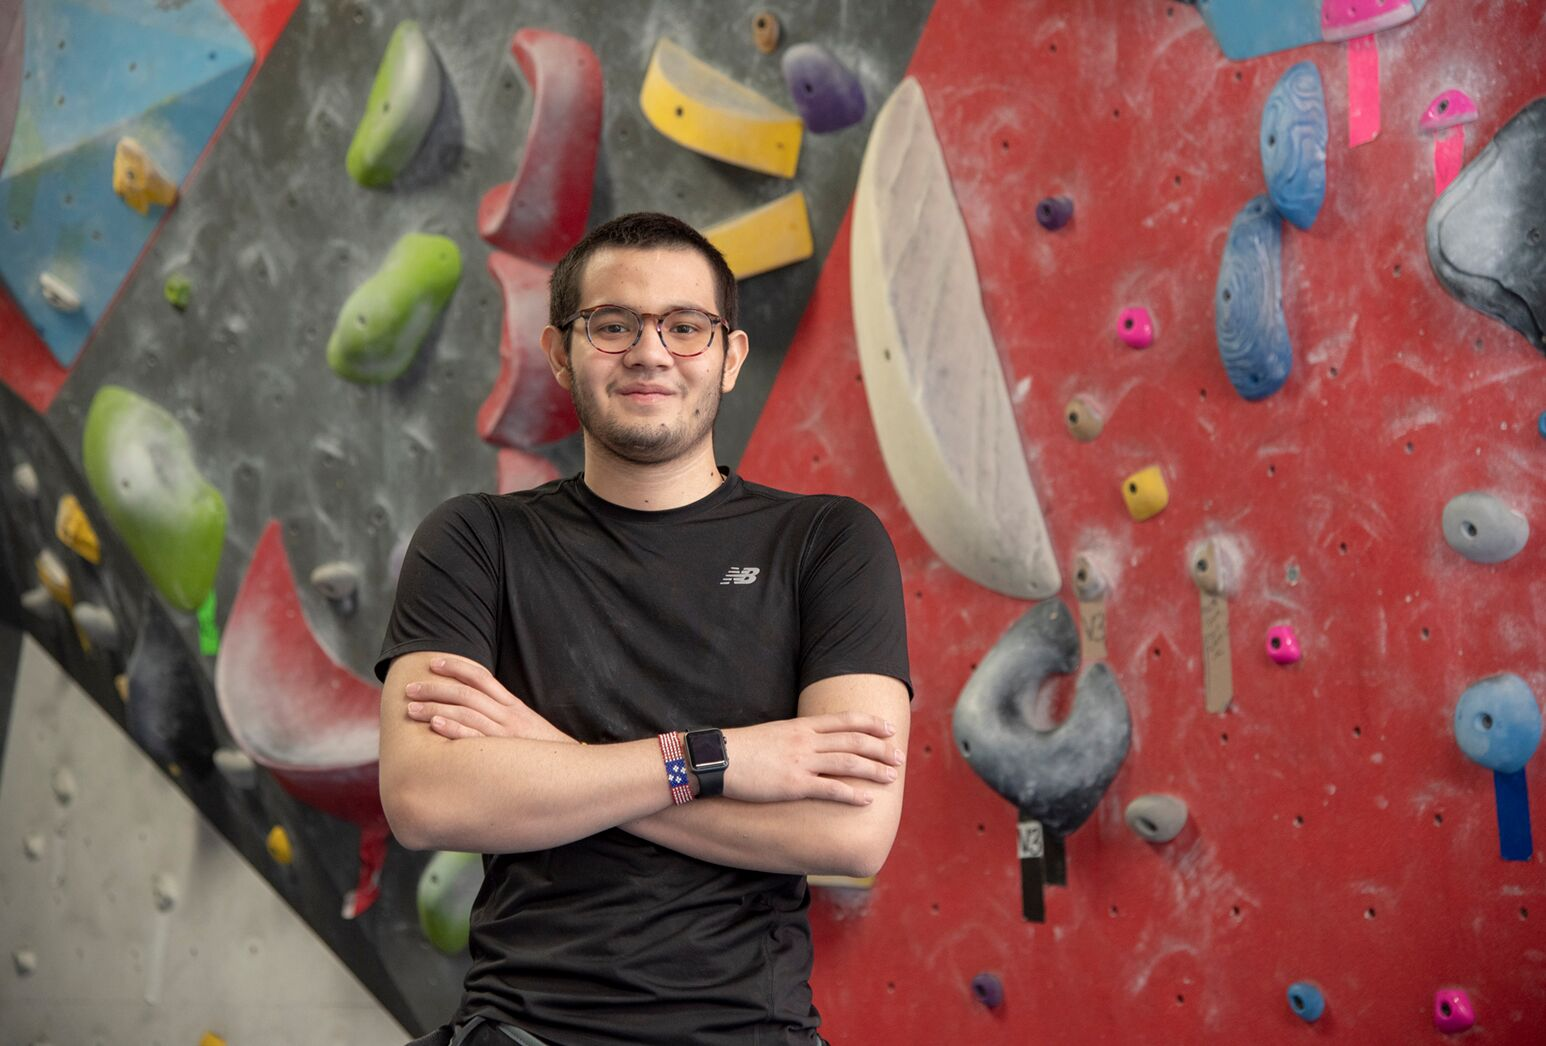 Young man standing in front of colorful climbing wall.